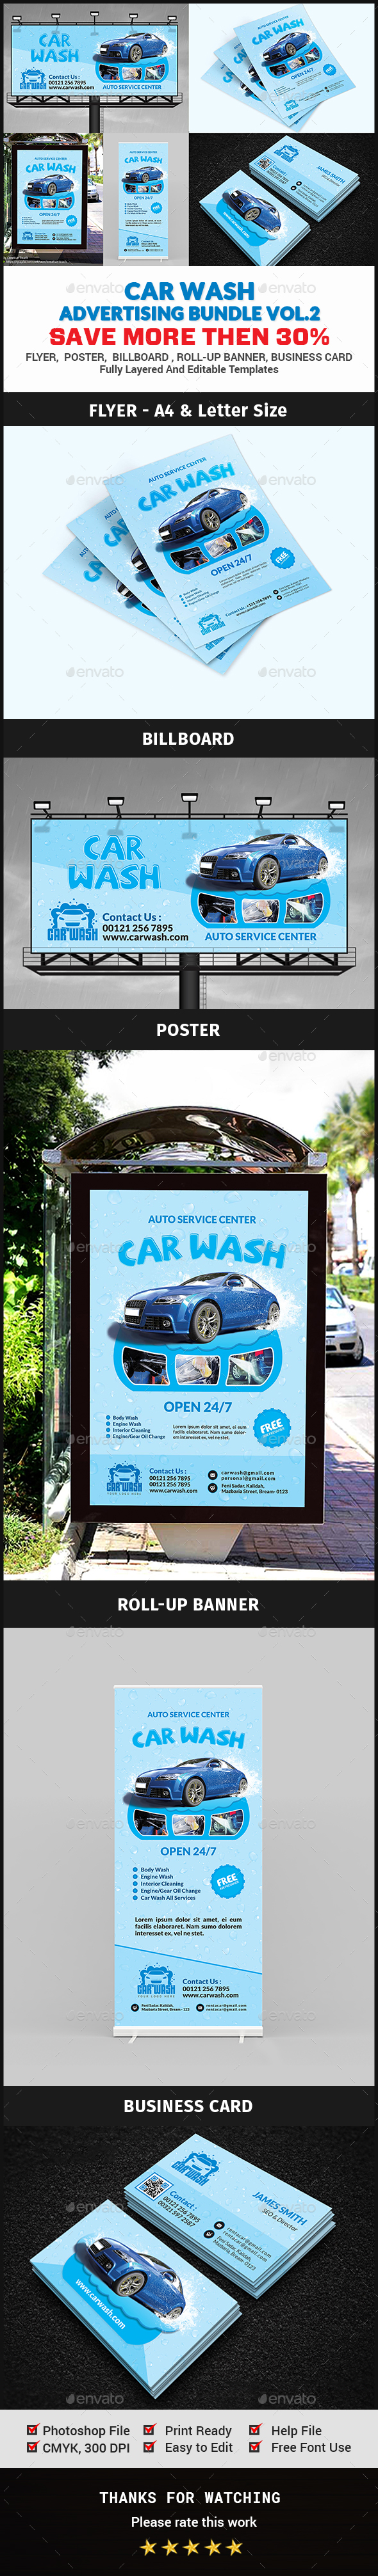 Car Wash Advertising Bundle Vol.2 - Signage Print Templates